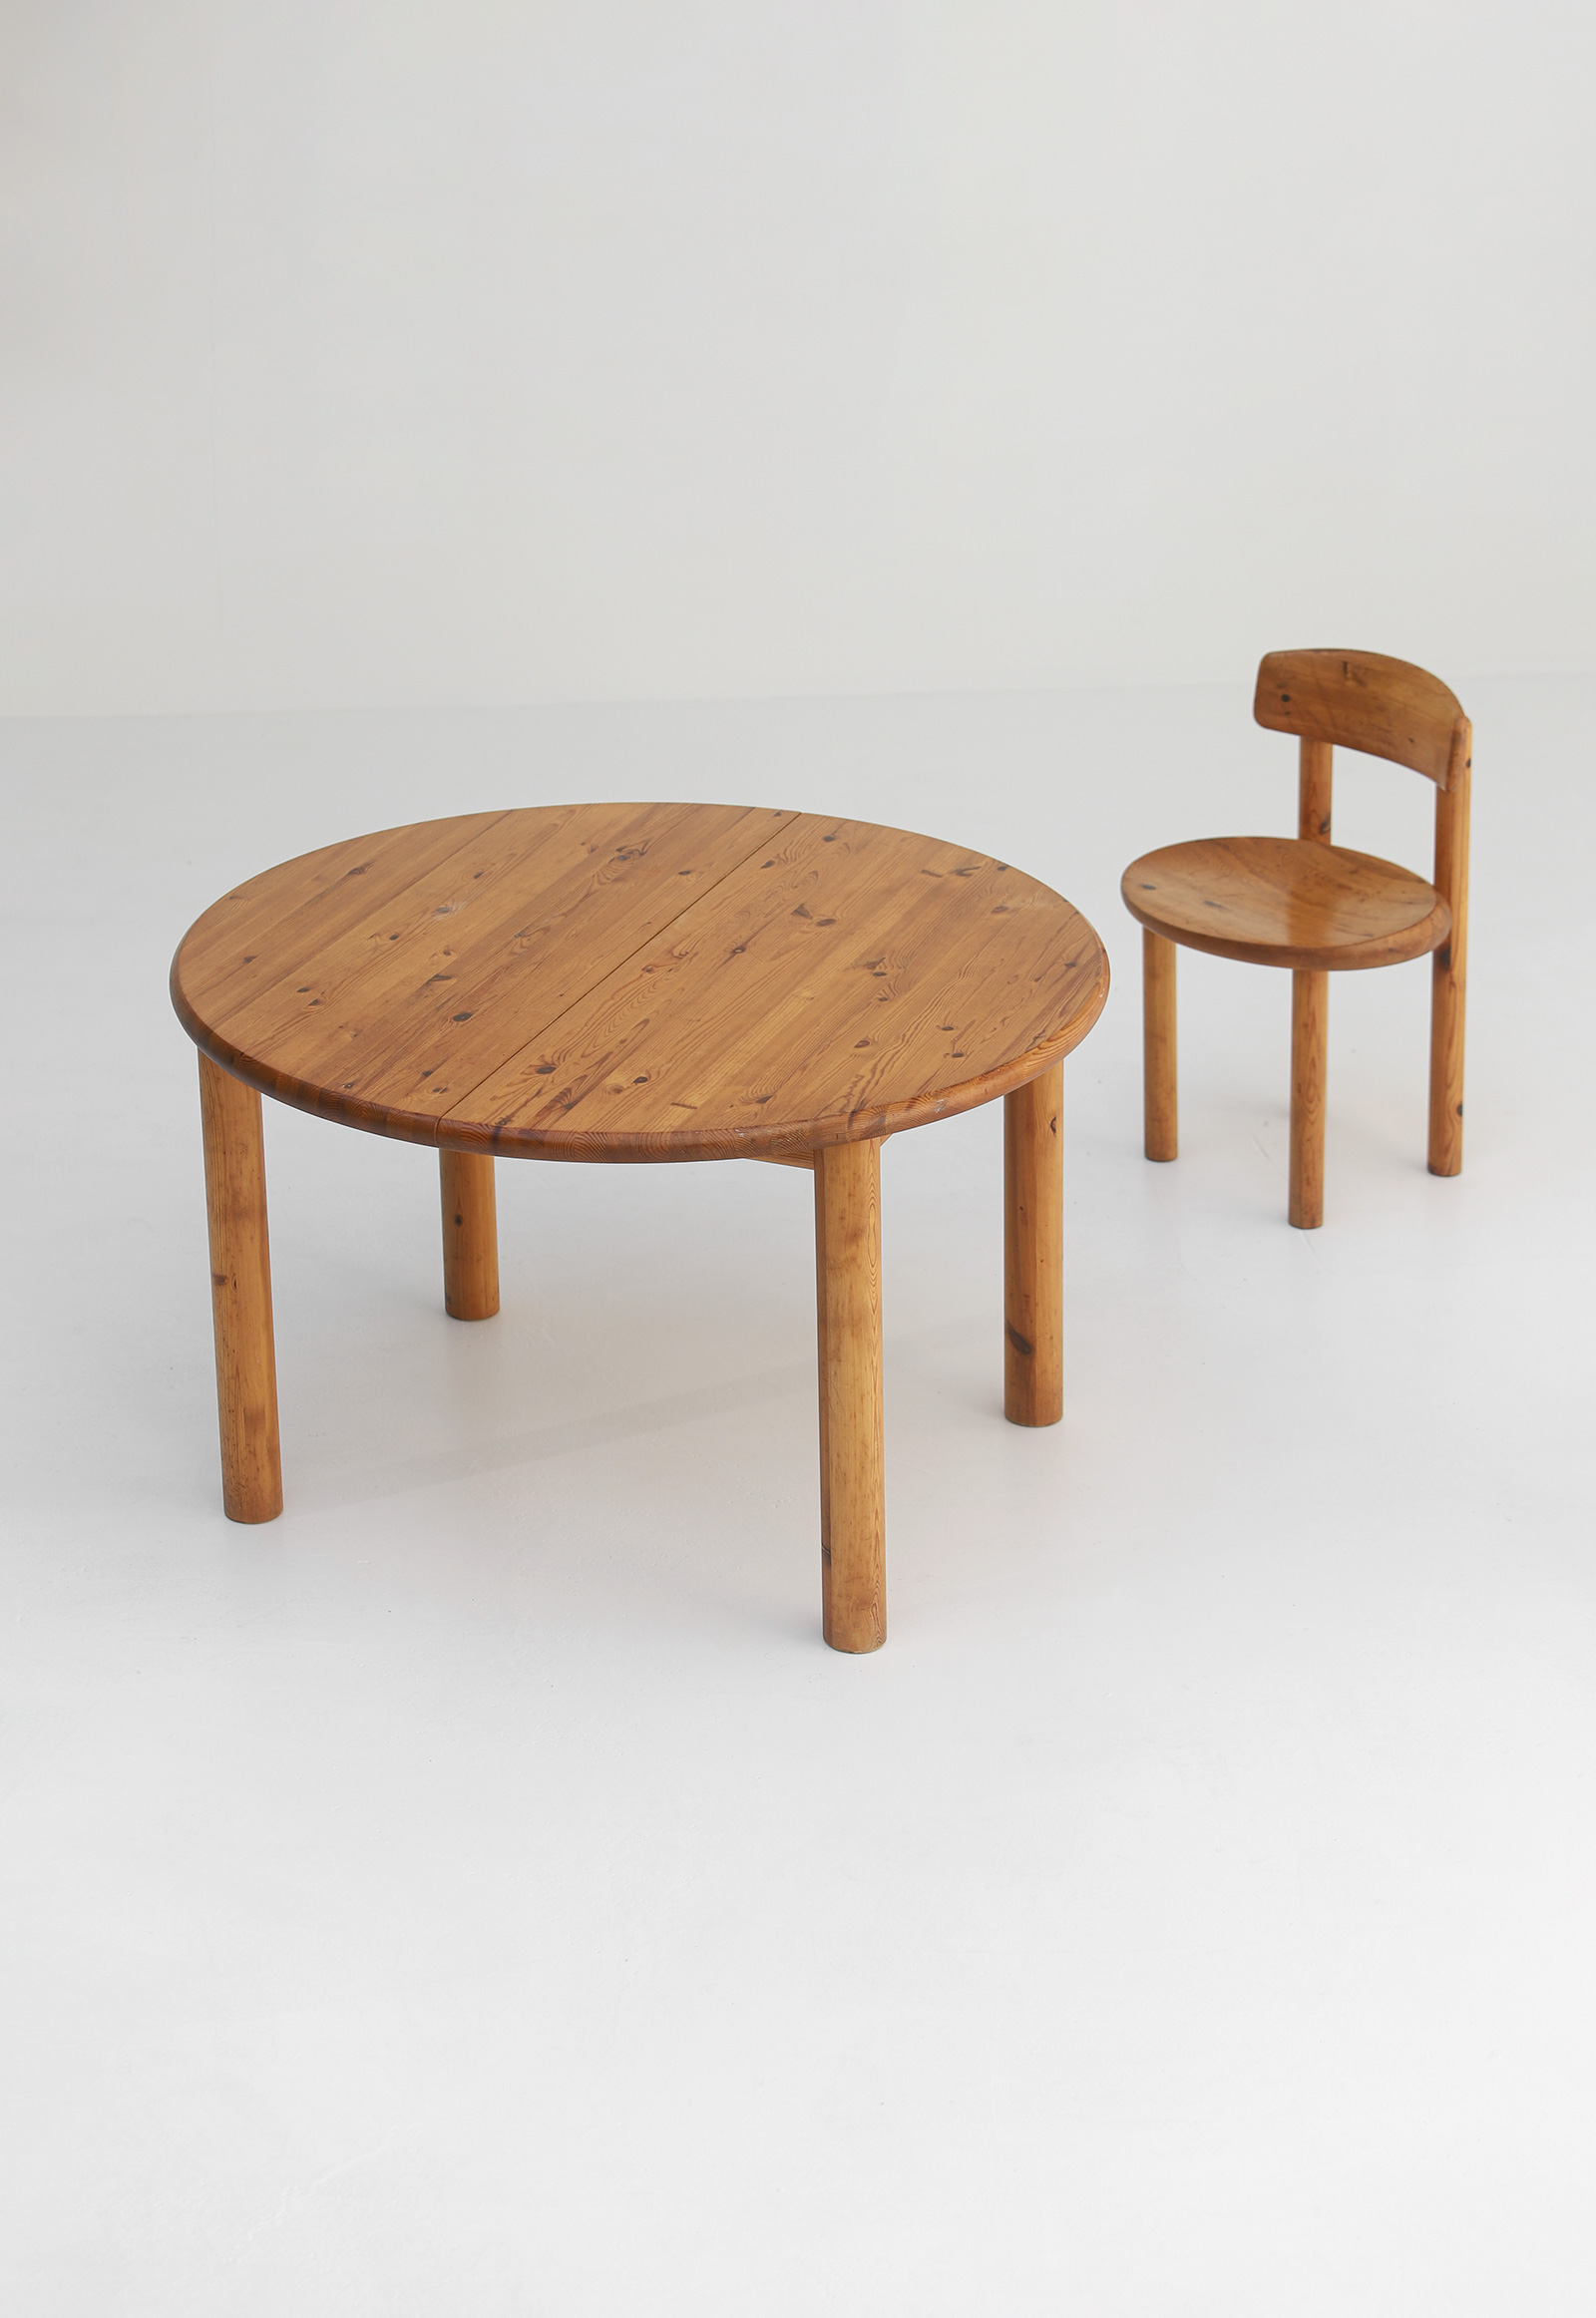 Rainer Daumiller Dining Table image 2